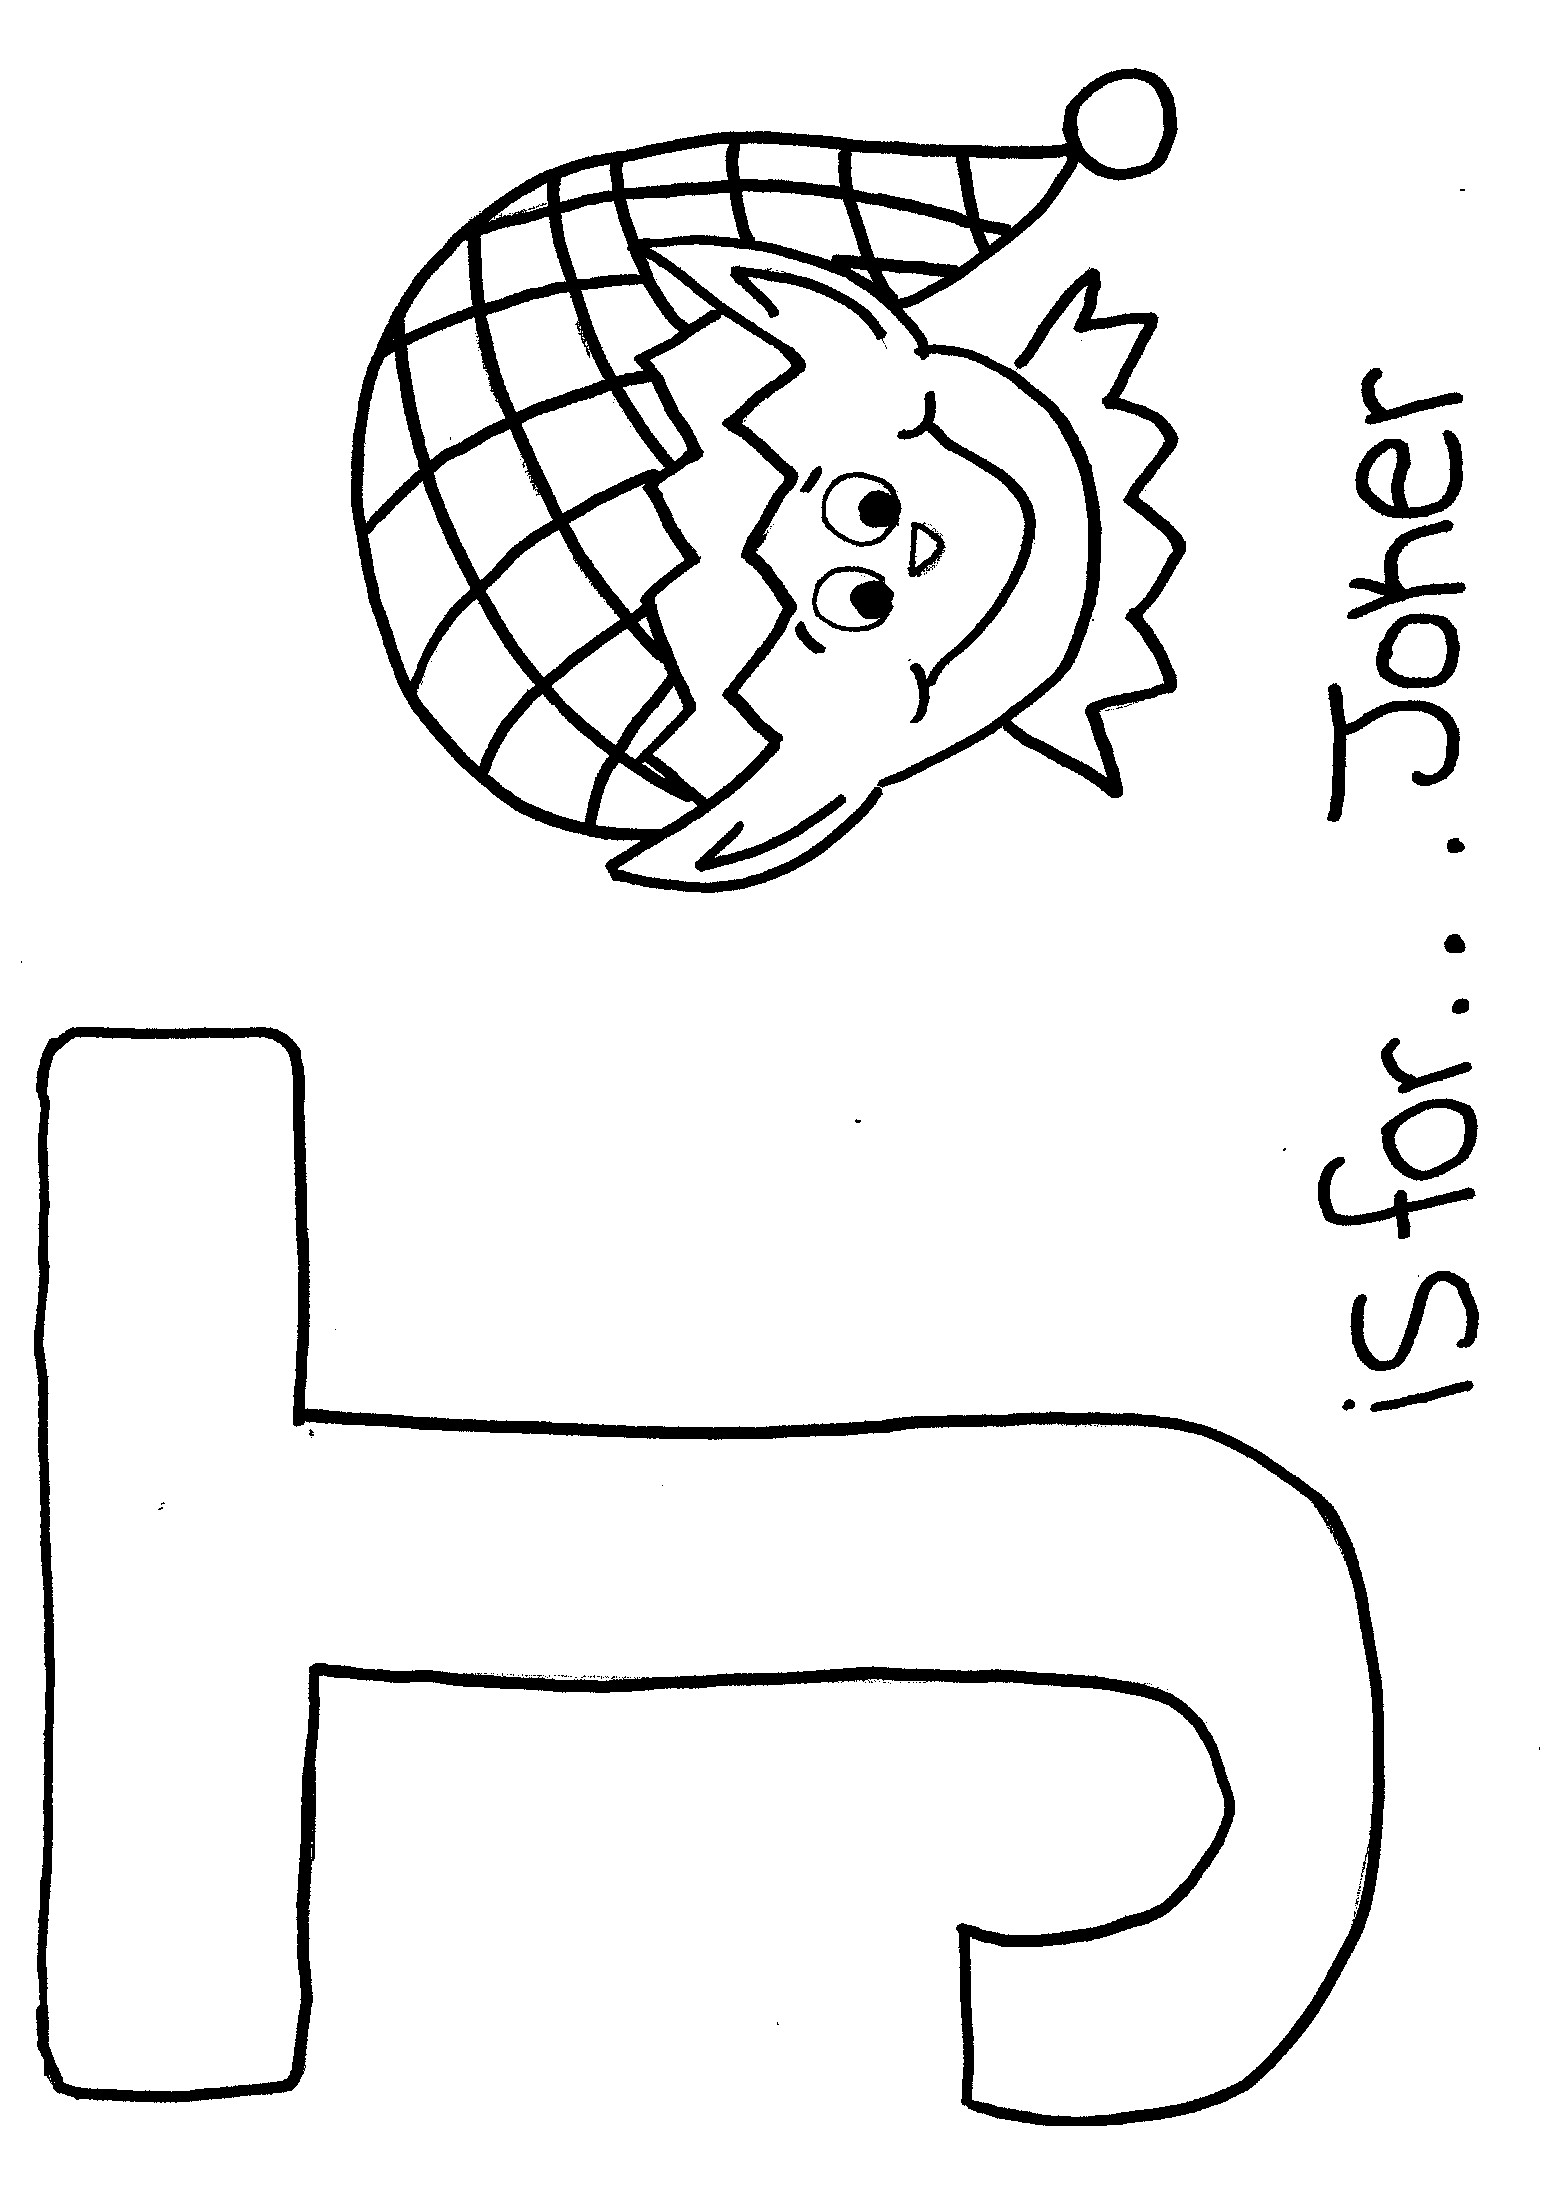 Letter J Coloring Page J Coloring Pages Funnyhub